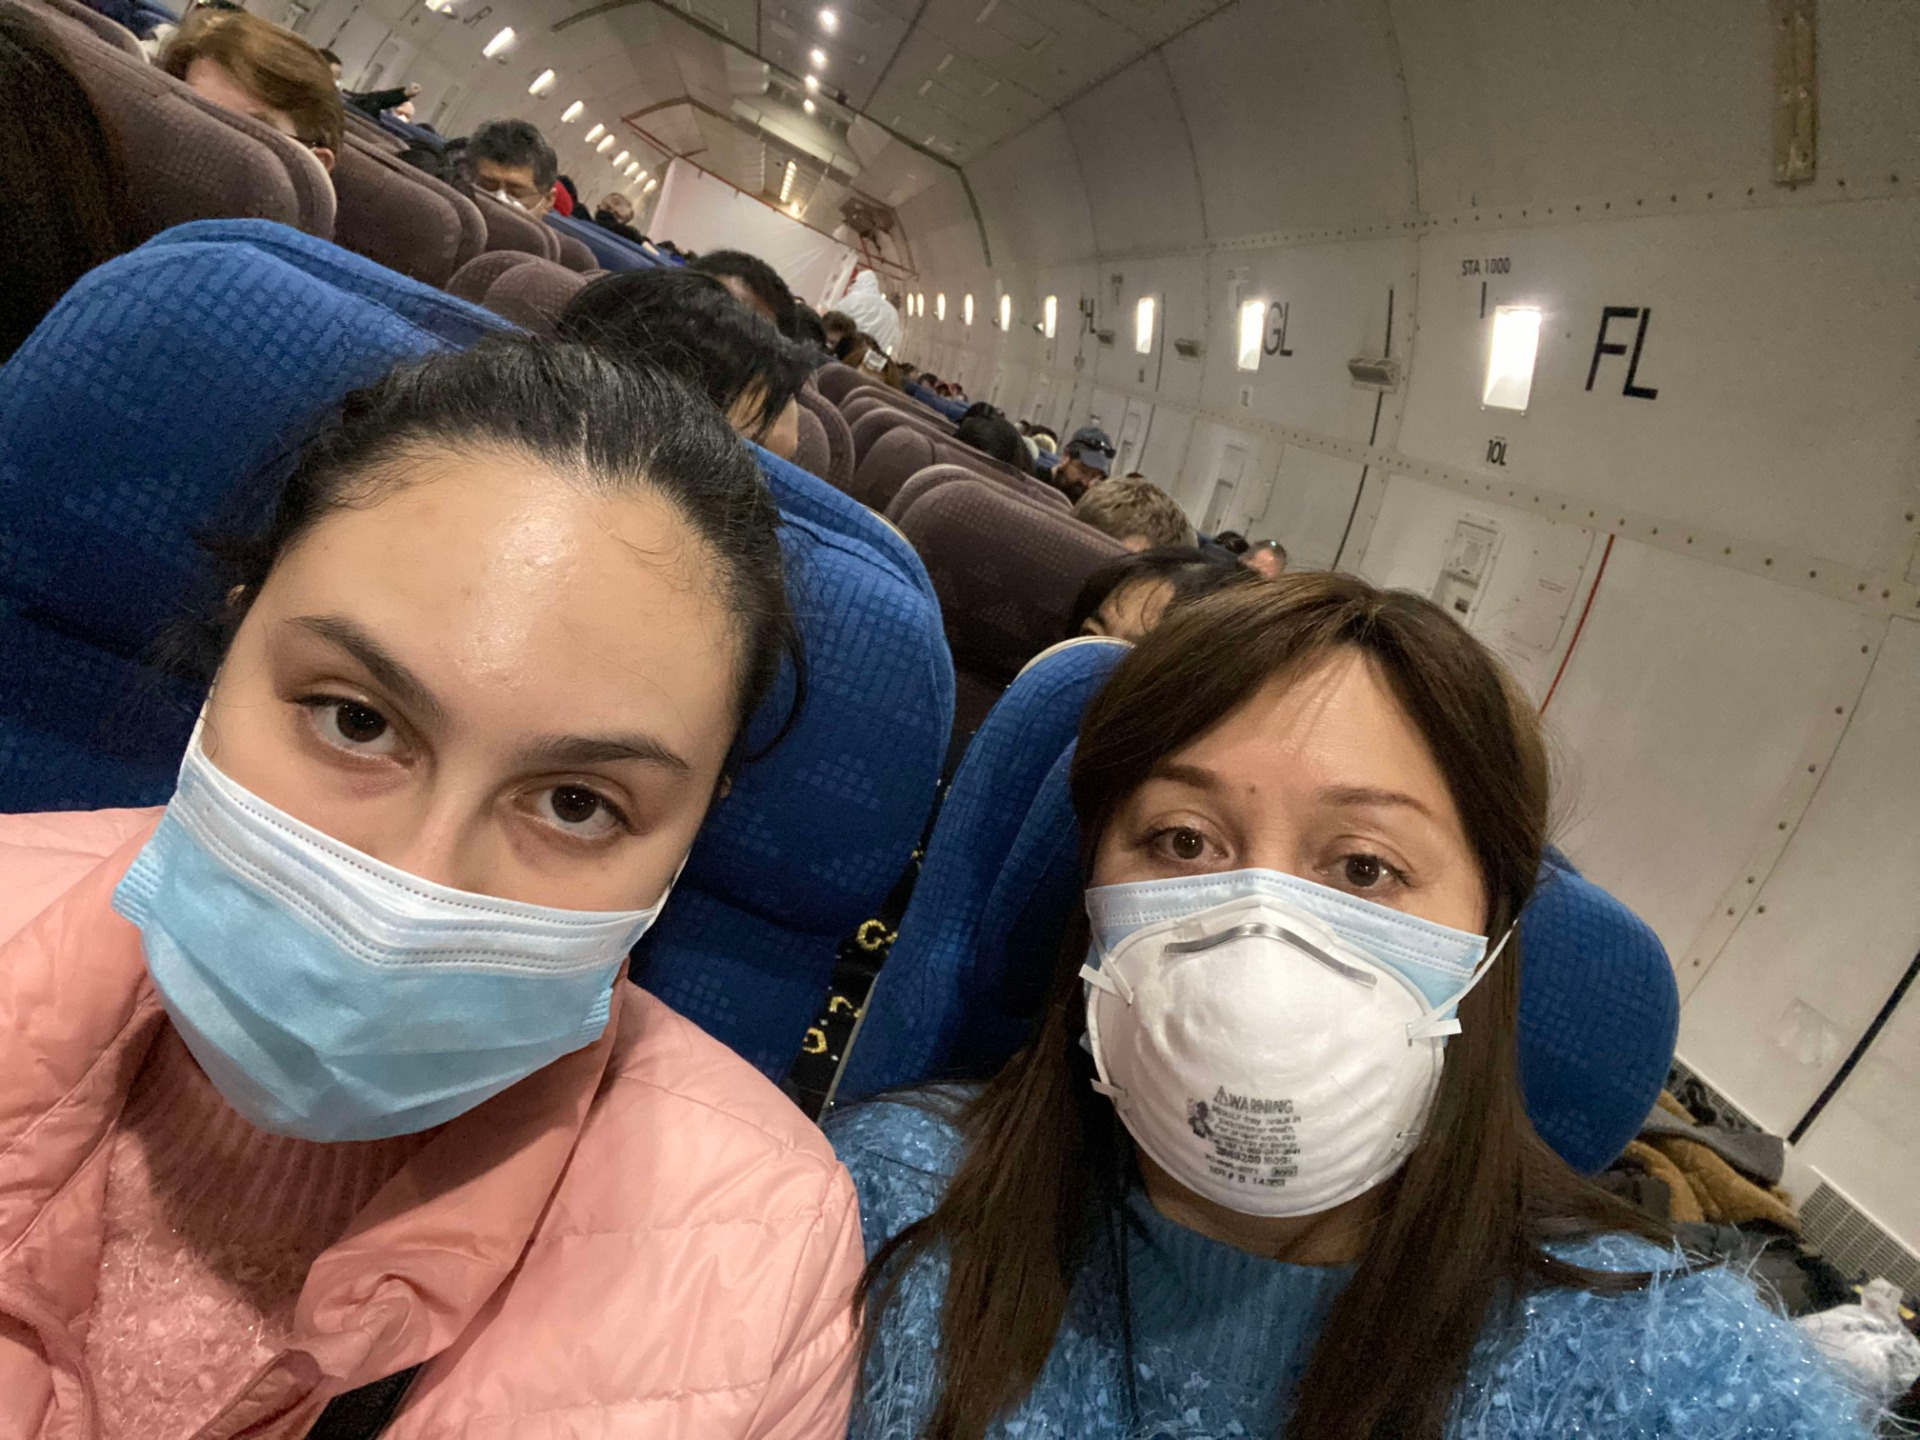 Esther Tiferes Tebeka and her 15 year-old daughter (left) on the American evacuation plane from Wuhan, China. (Esther Tiferes Tebeka)